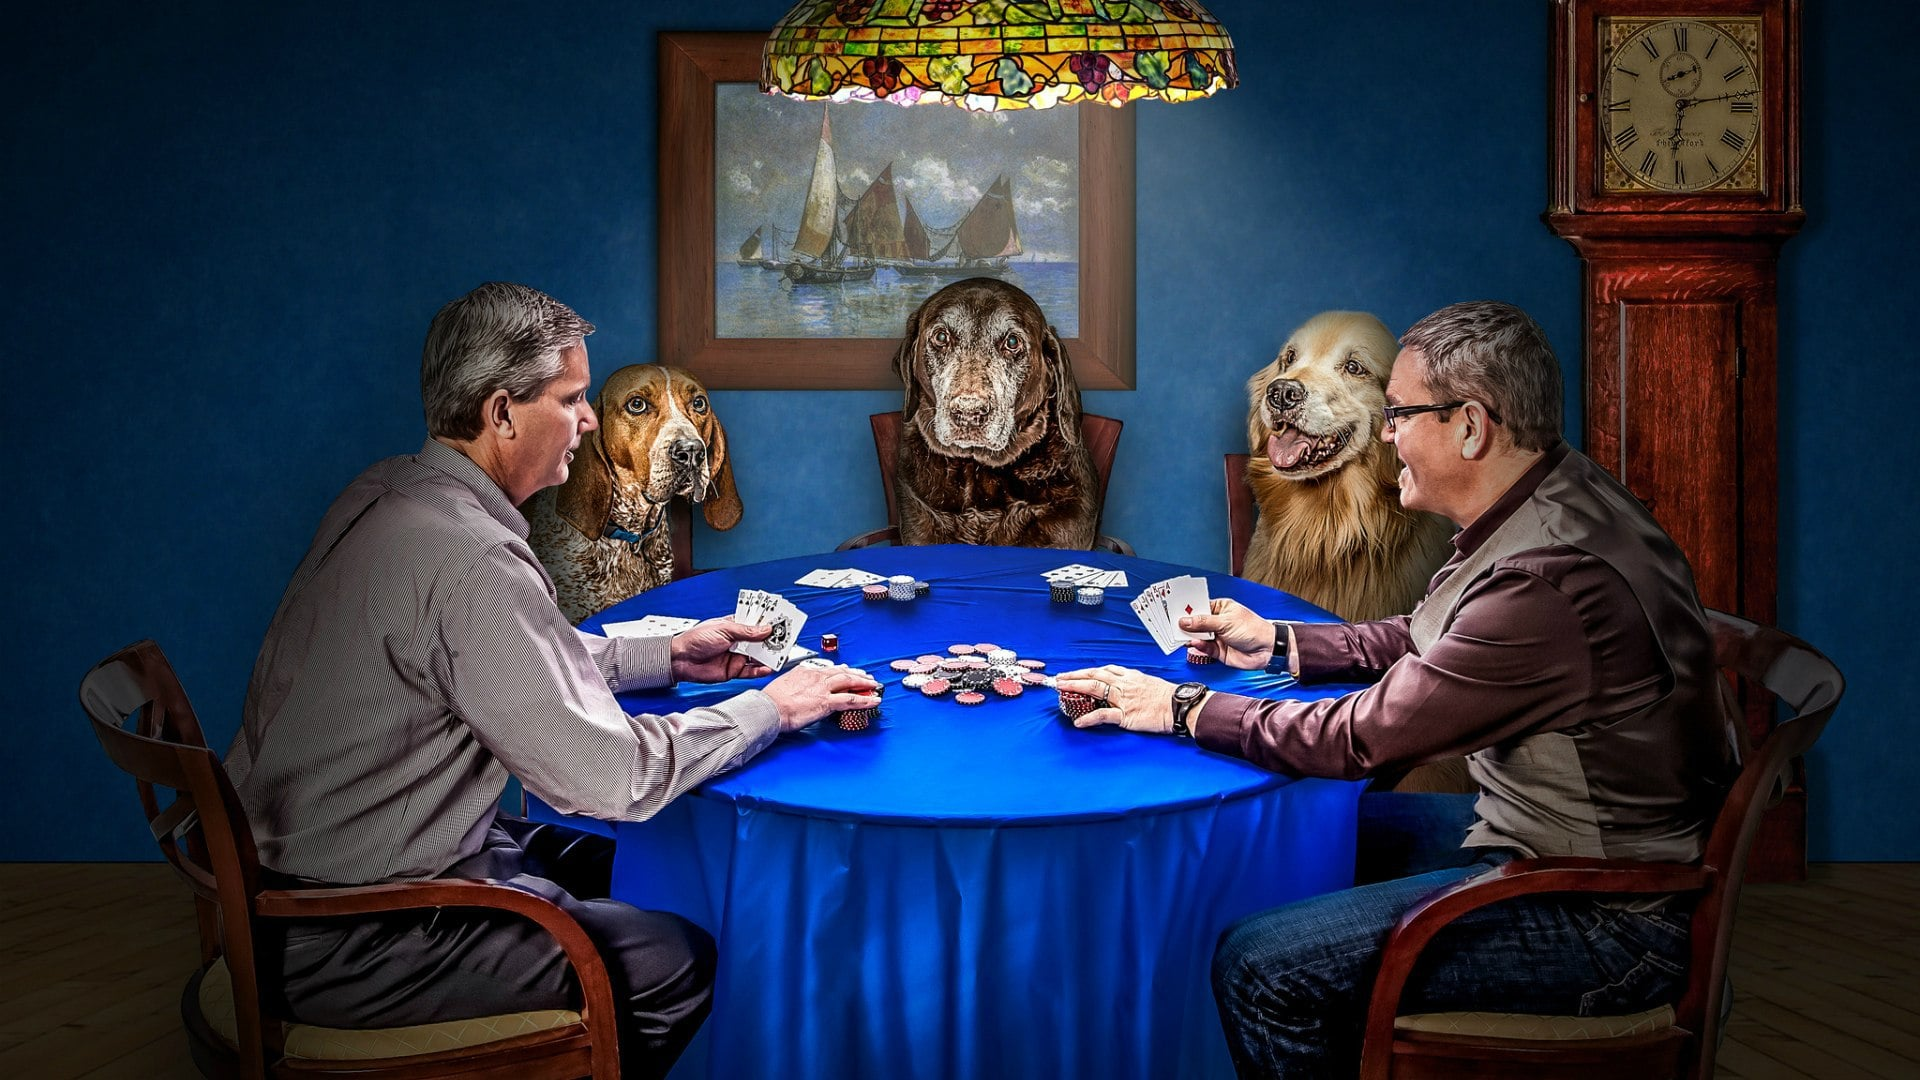 people_playing_poker_with_dogs_096154_-min.jpg